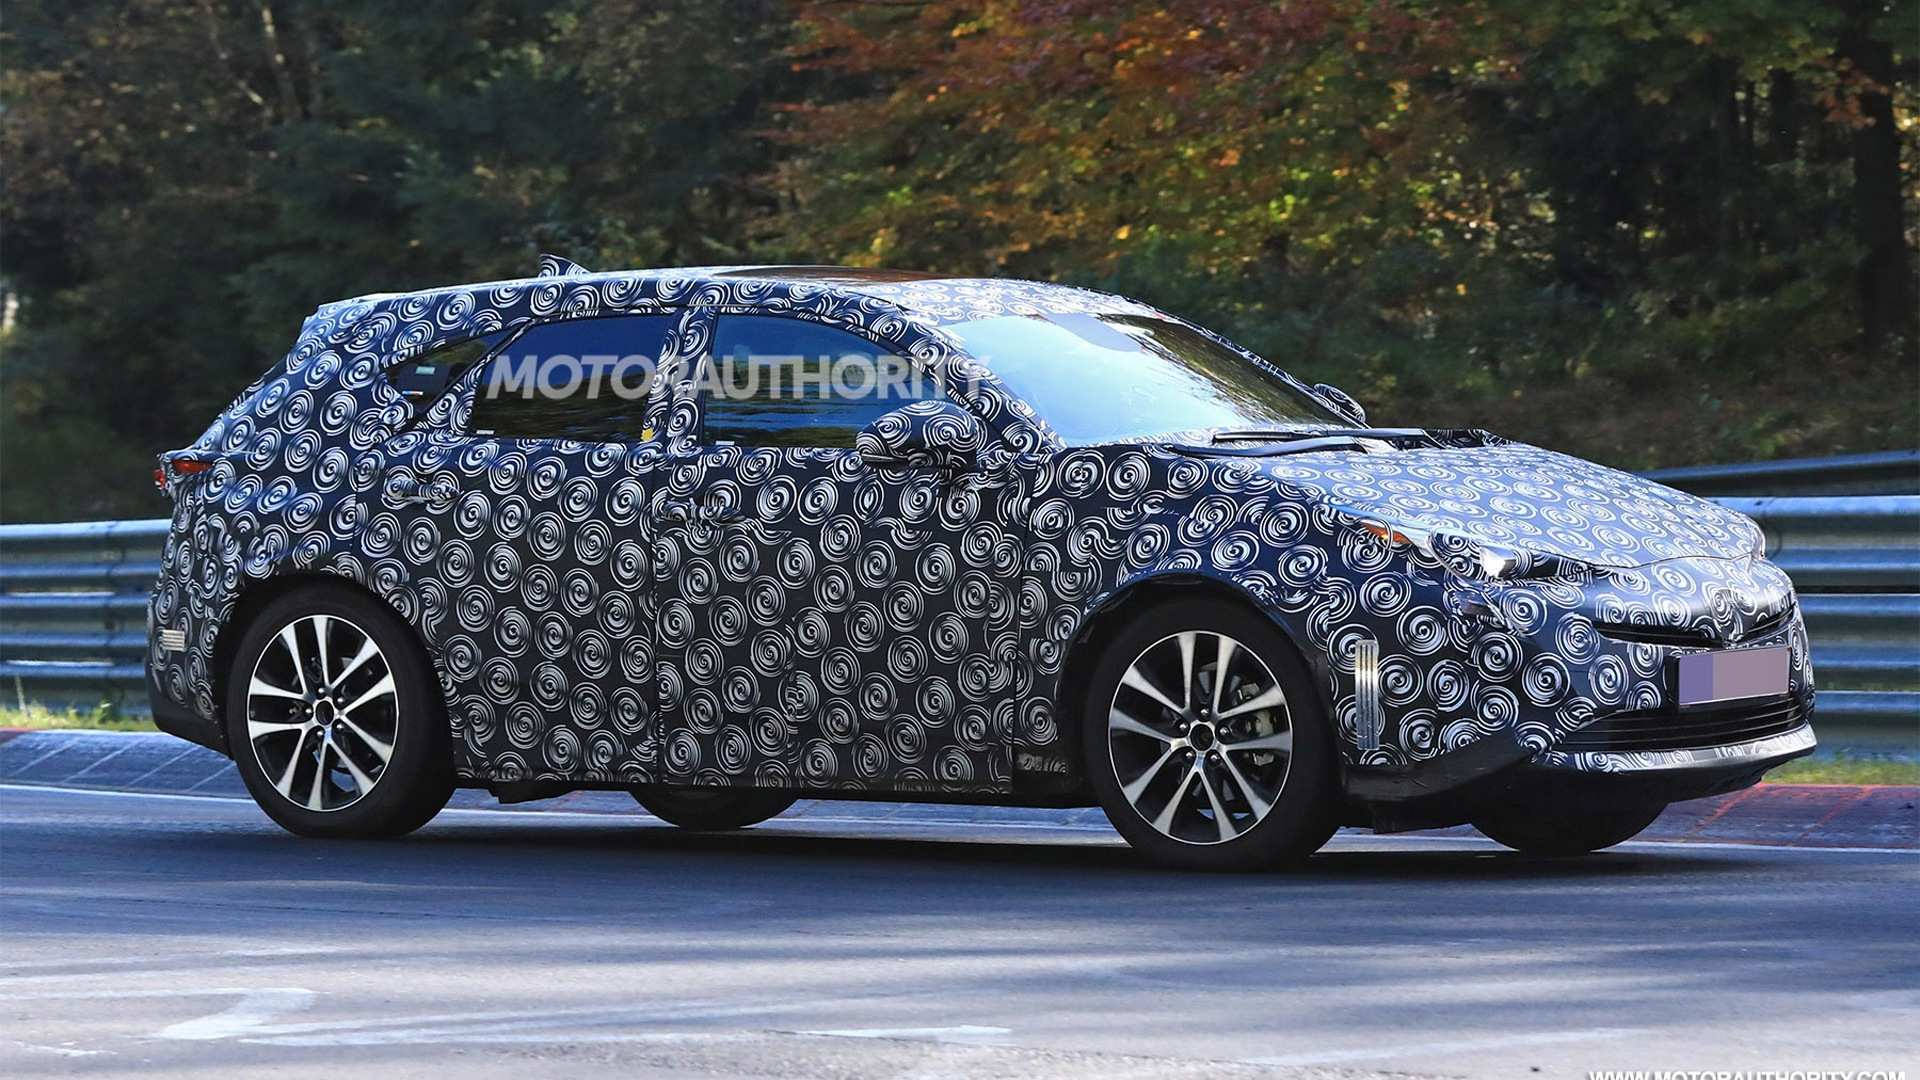 50 A Spy Shots Toyota Prius Price And Review